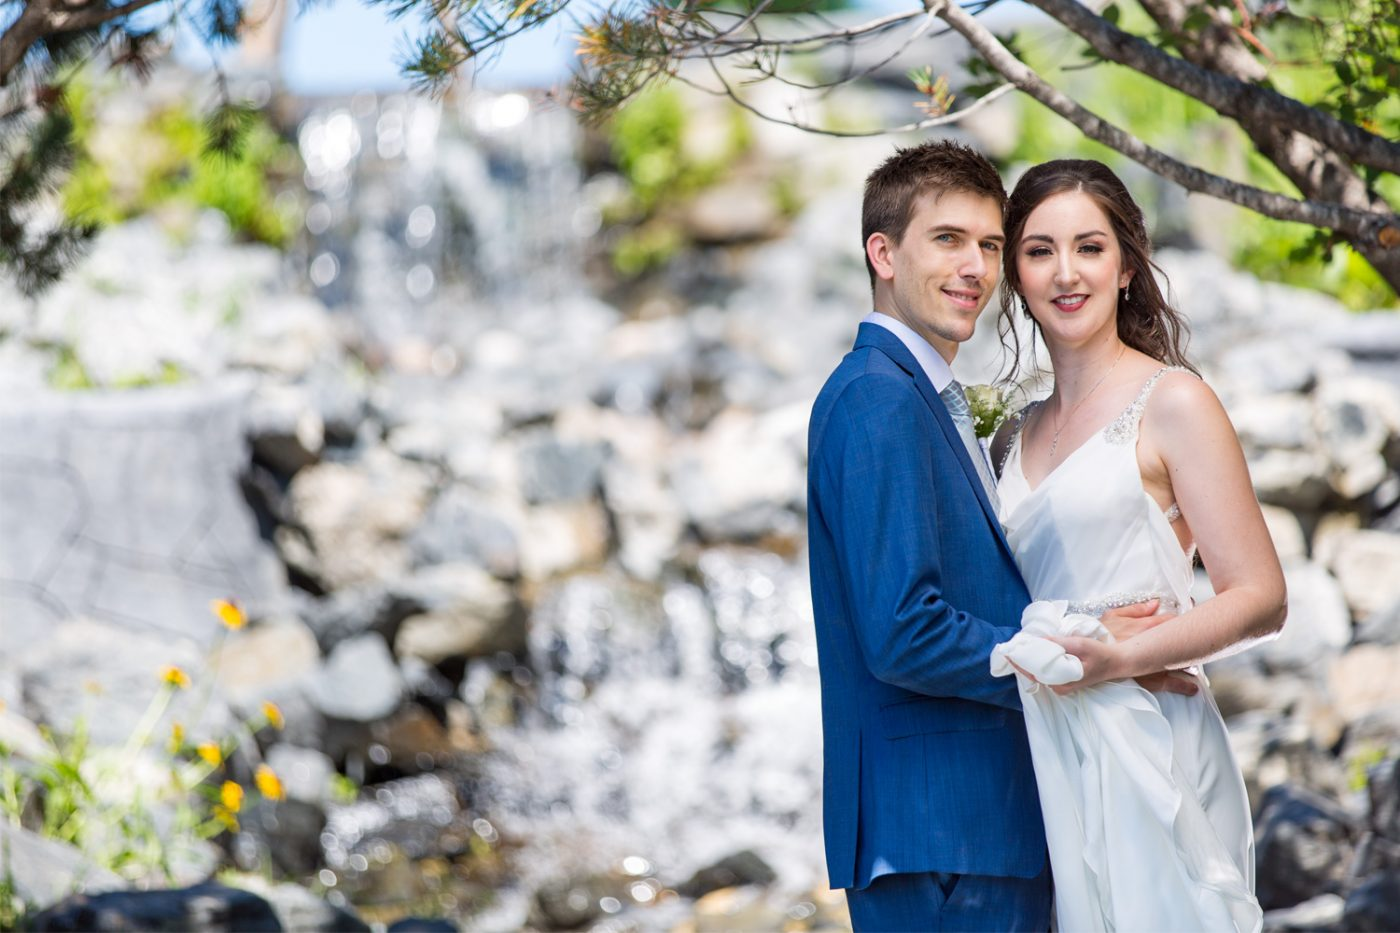 The couple hold each other with a waterfall in the background